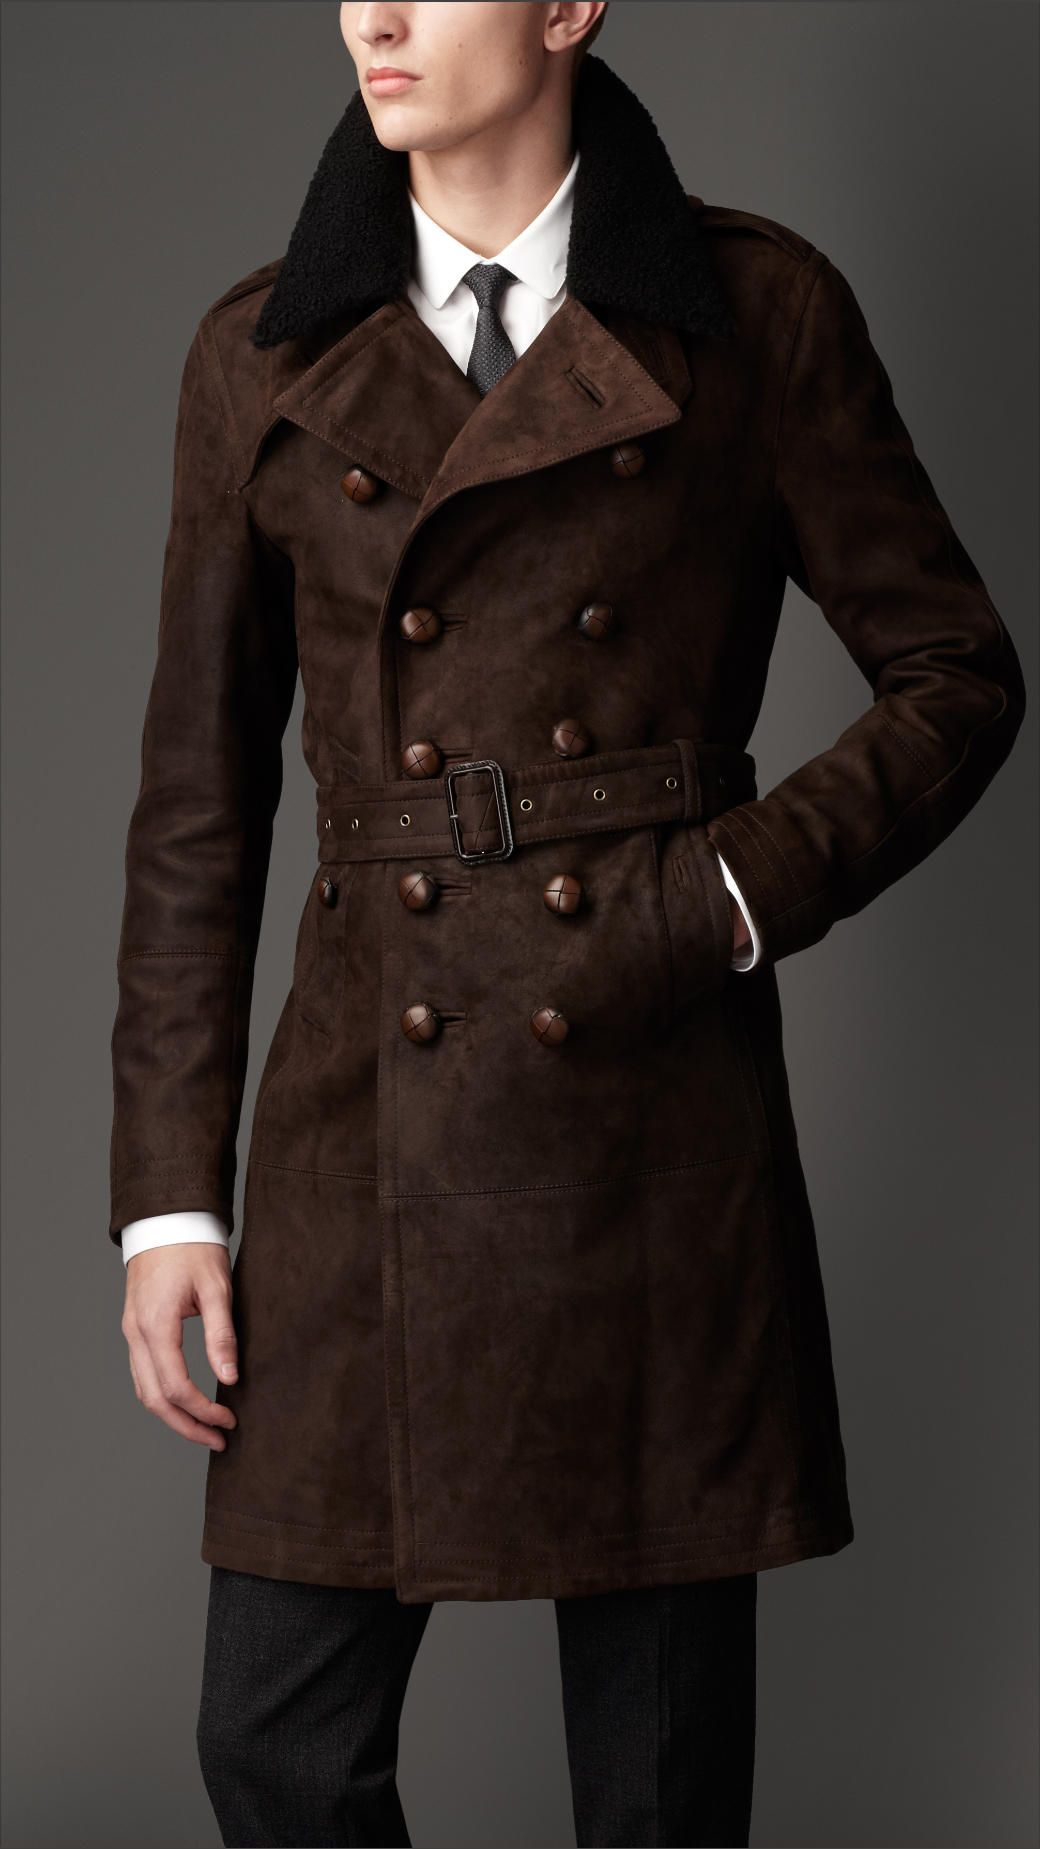 9fb09de5c1b3 Burberry Mid-Length Shearling Collar Suede Trench Coat in Brown for Men  (lentil brown)